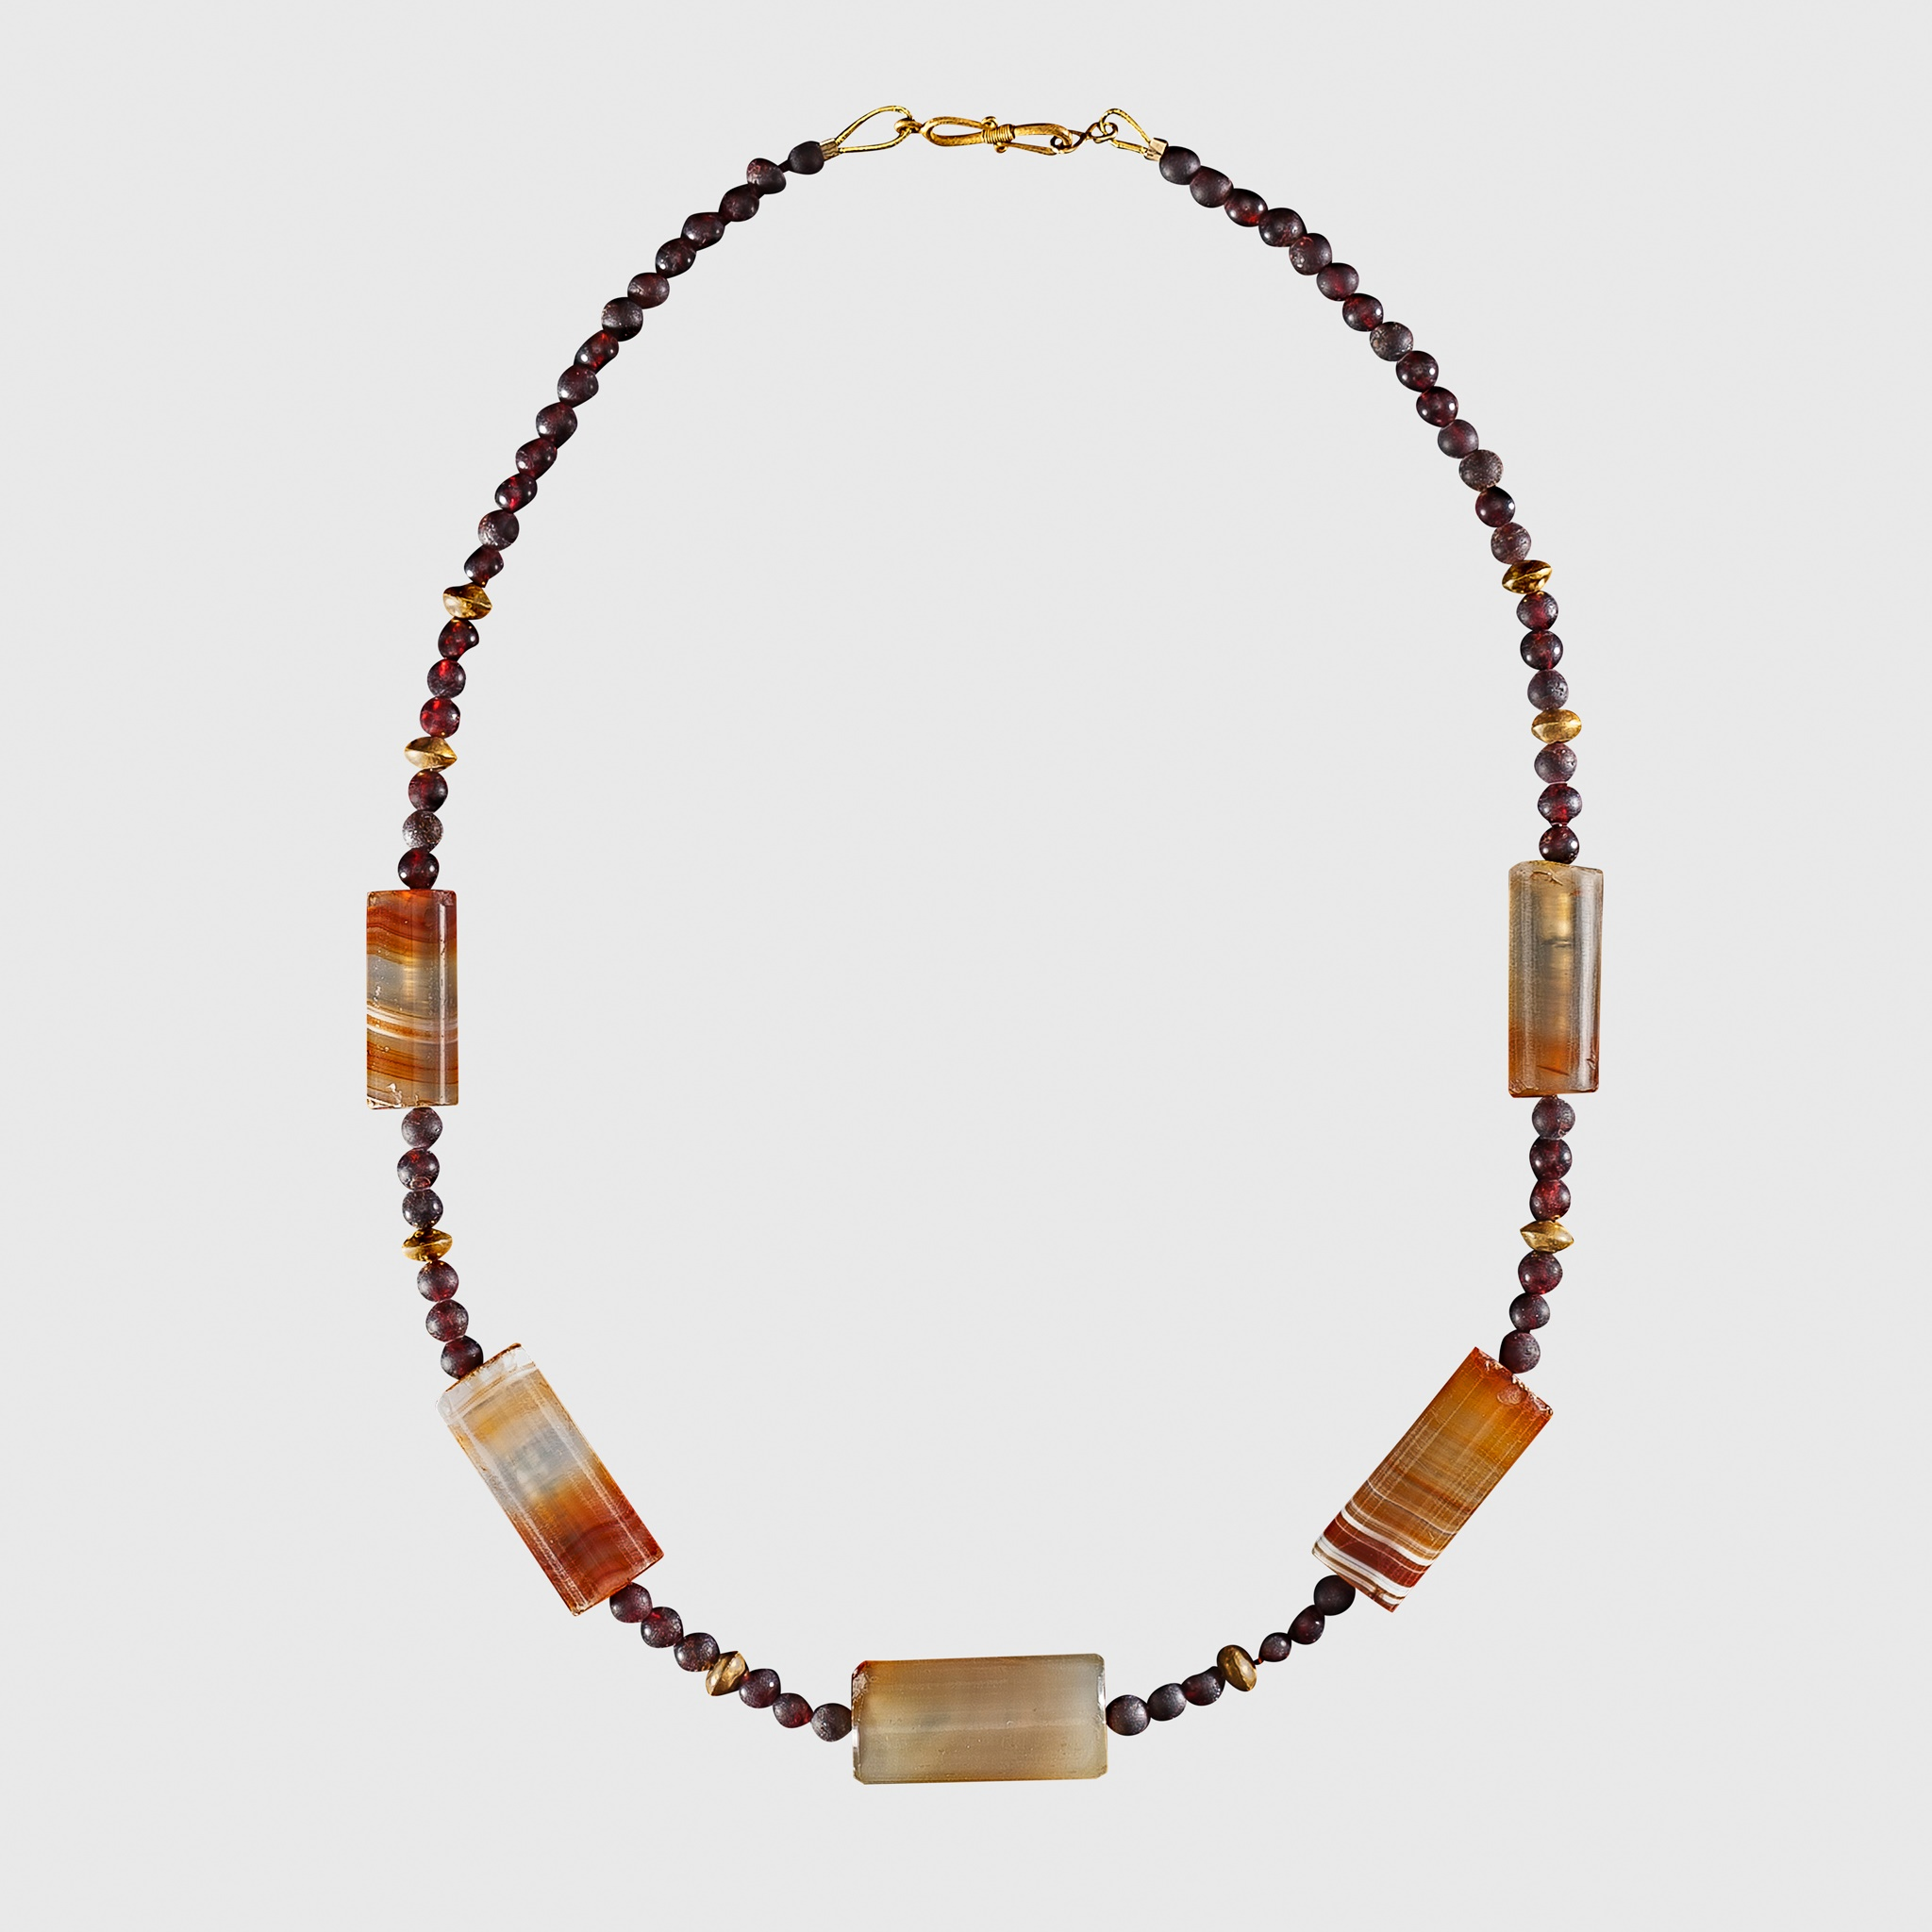 HELLENISTIC GARNET, AGATE AND GOLD BEAD NECKLACE EASTERN MEDITERRANEAN, 3RD - 1ST CENTURY B.C.